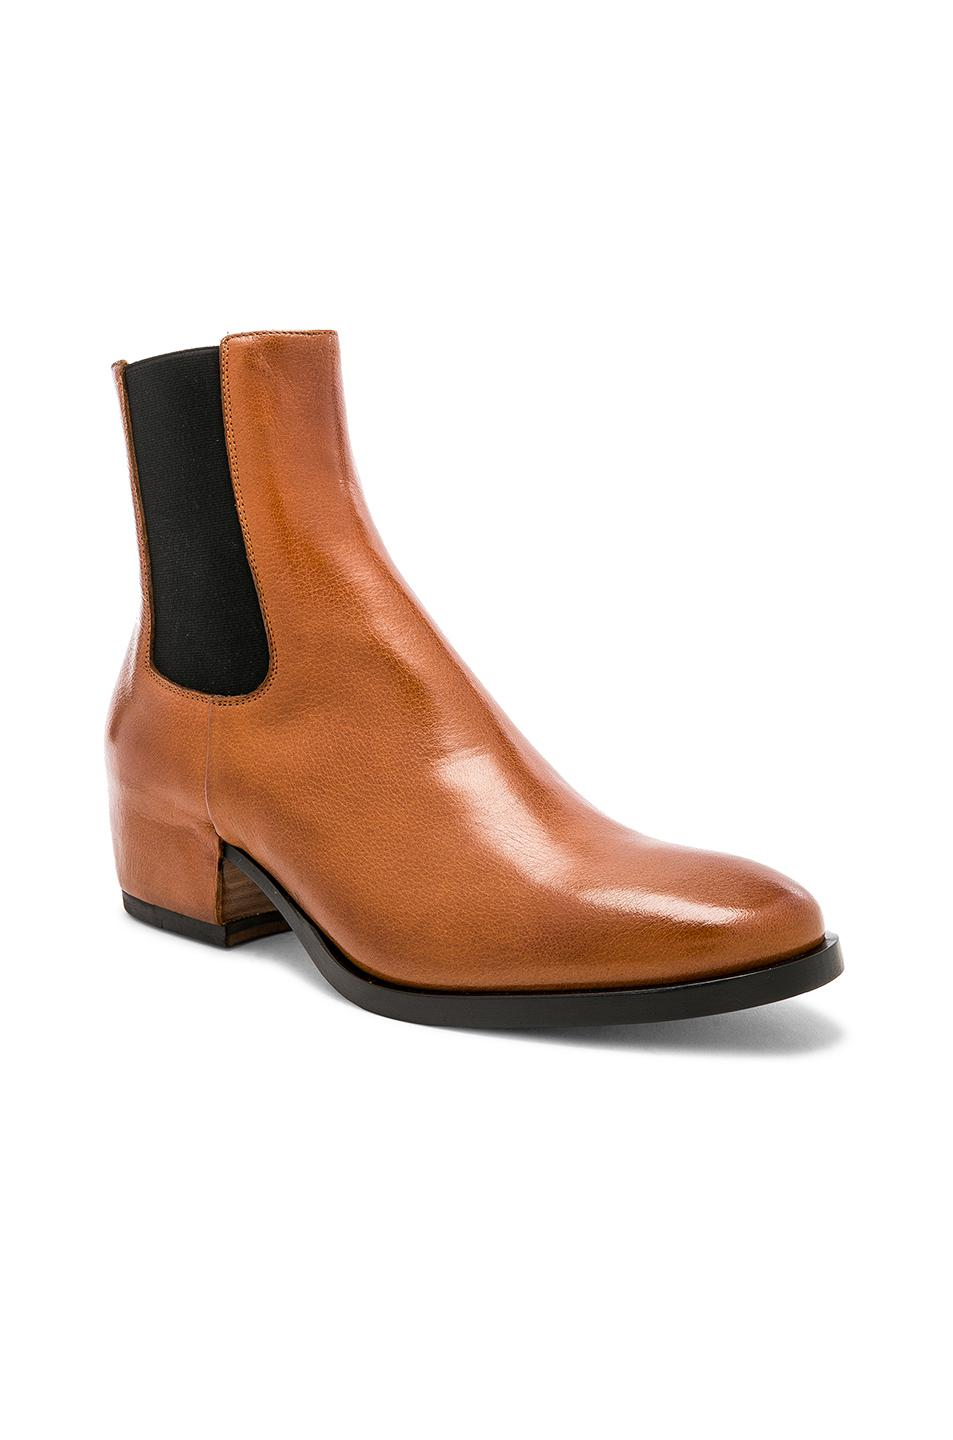 Givenchy Cuban Heel Leather Chelsea Boots in . jT3N4